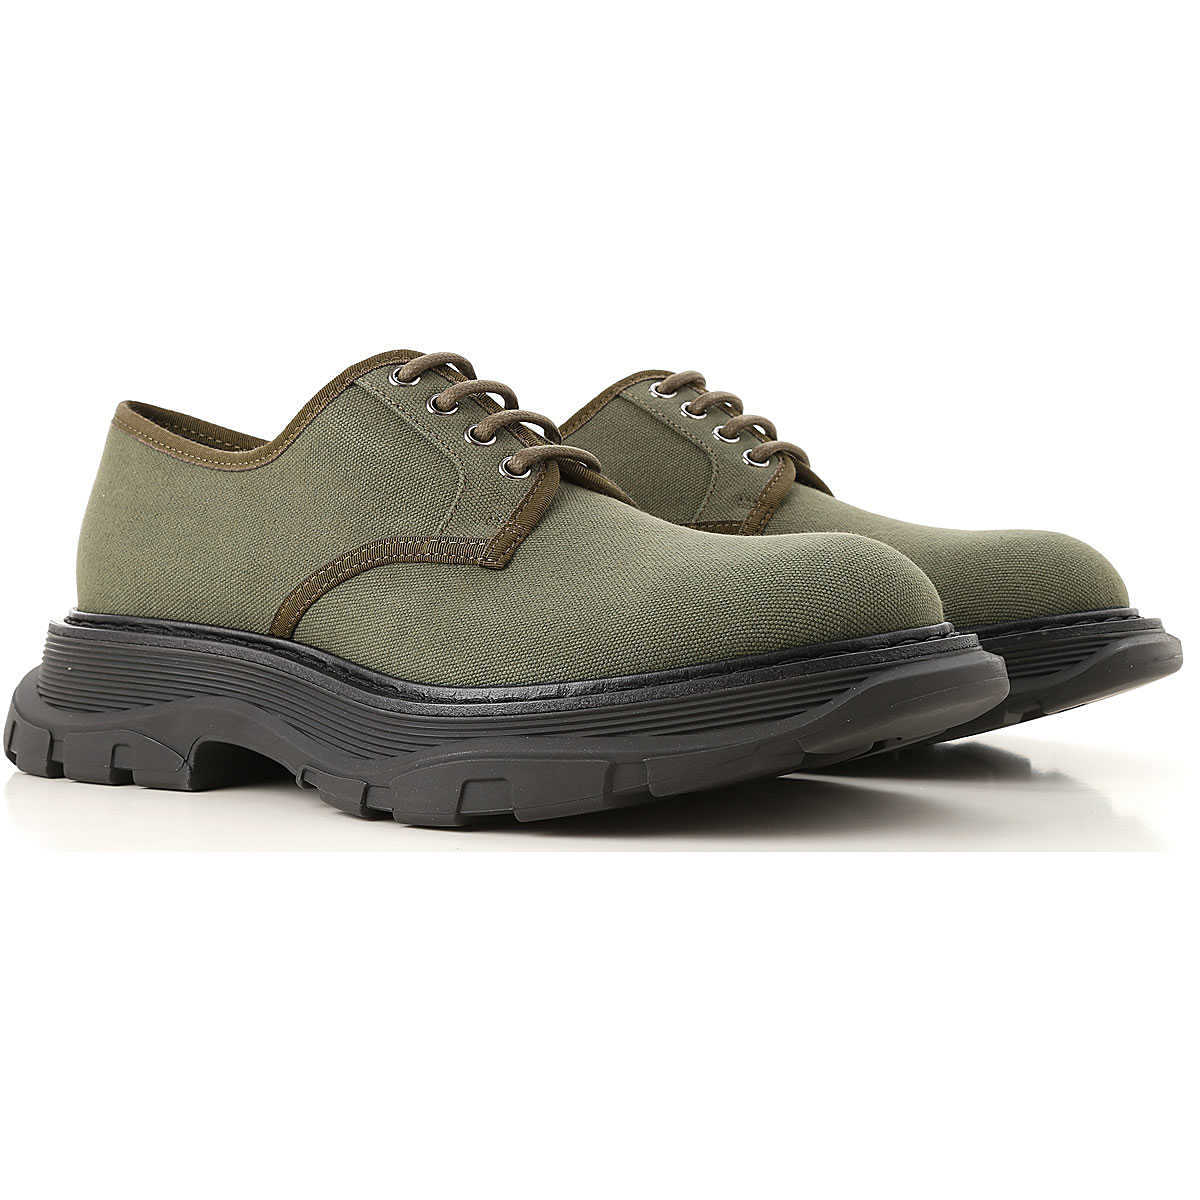 Alexander McQueen Lace Up Shoes for Men Oxfords Derbies and Brogues On Sale - GOOFASH